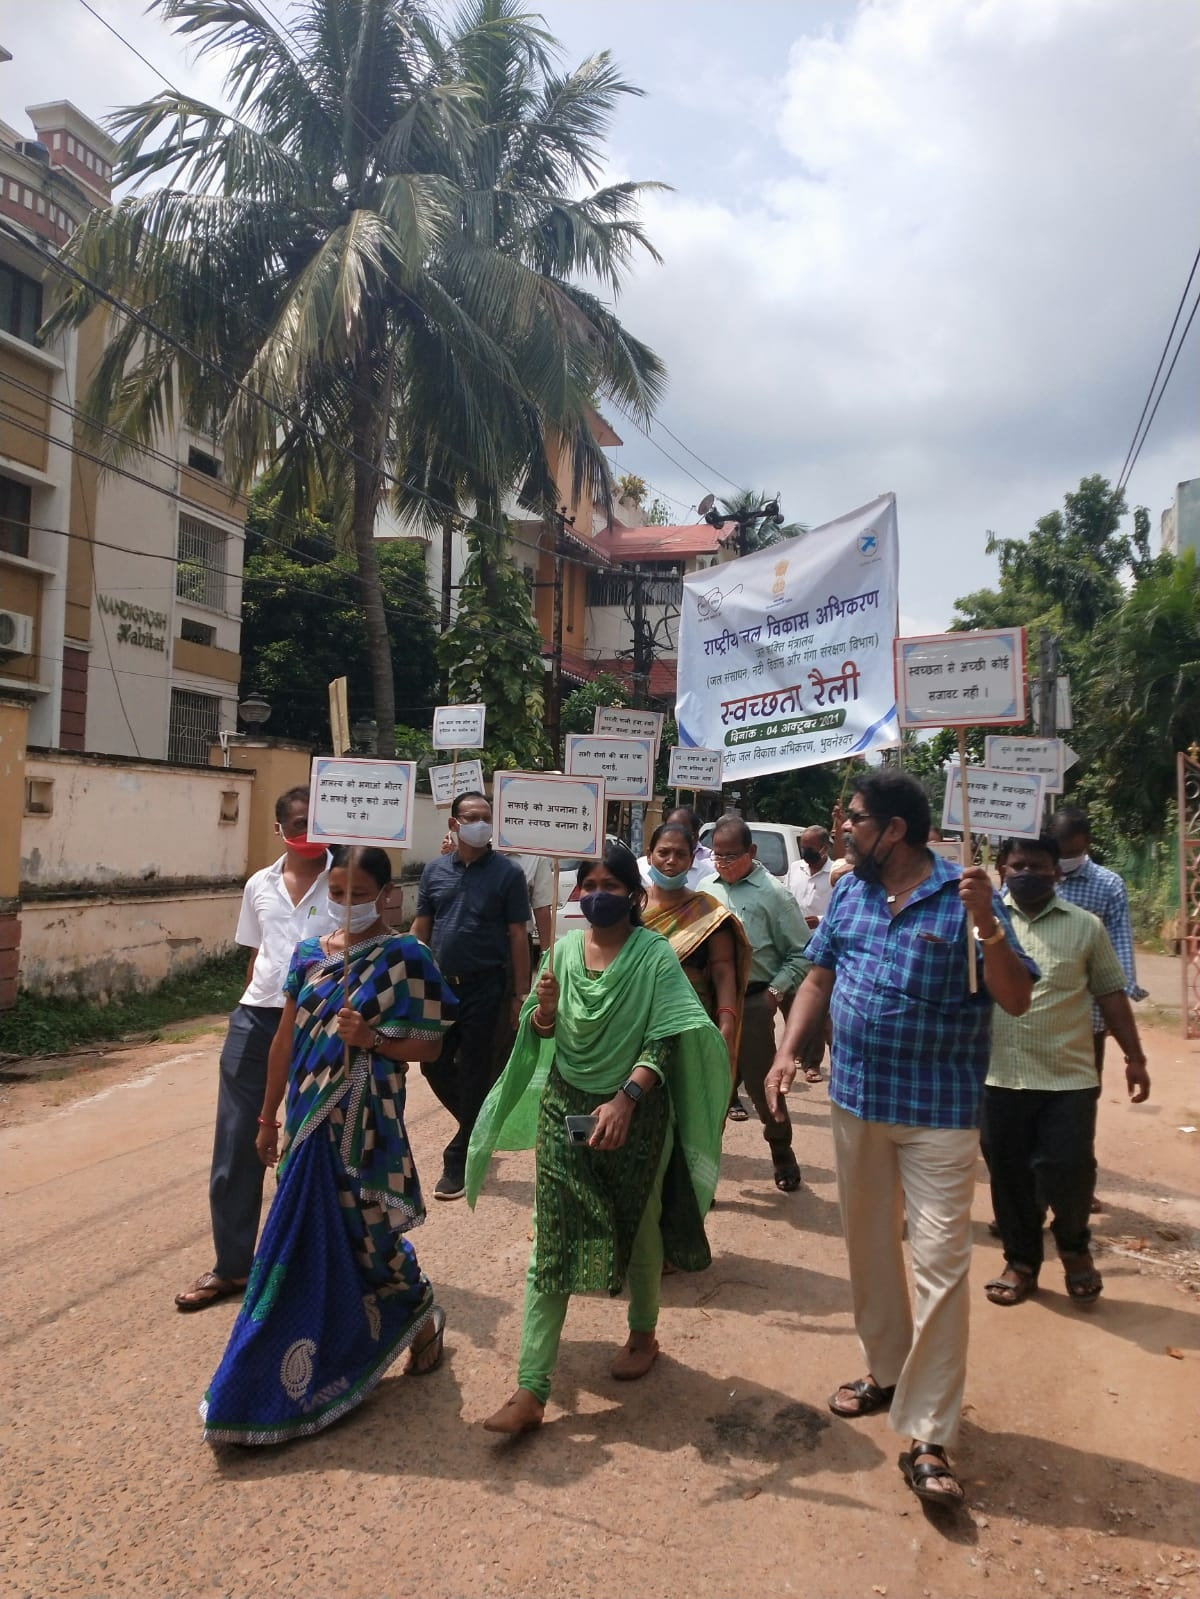 Swacchta Rally by NWDA Offices at Bhubaneswar on 04-10-2021